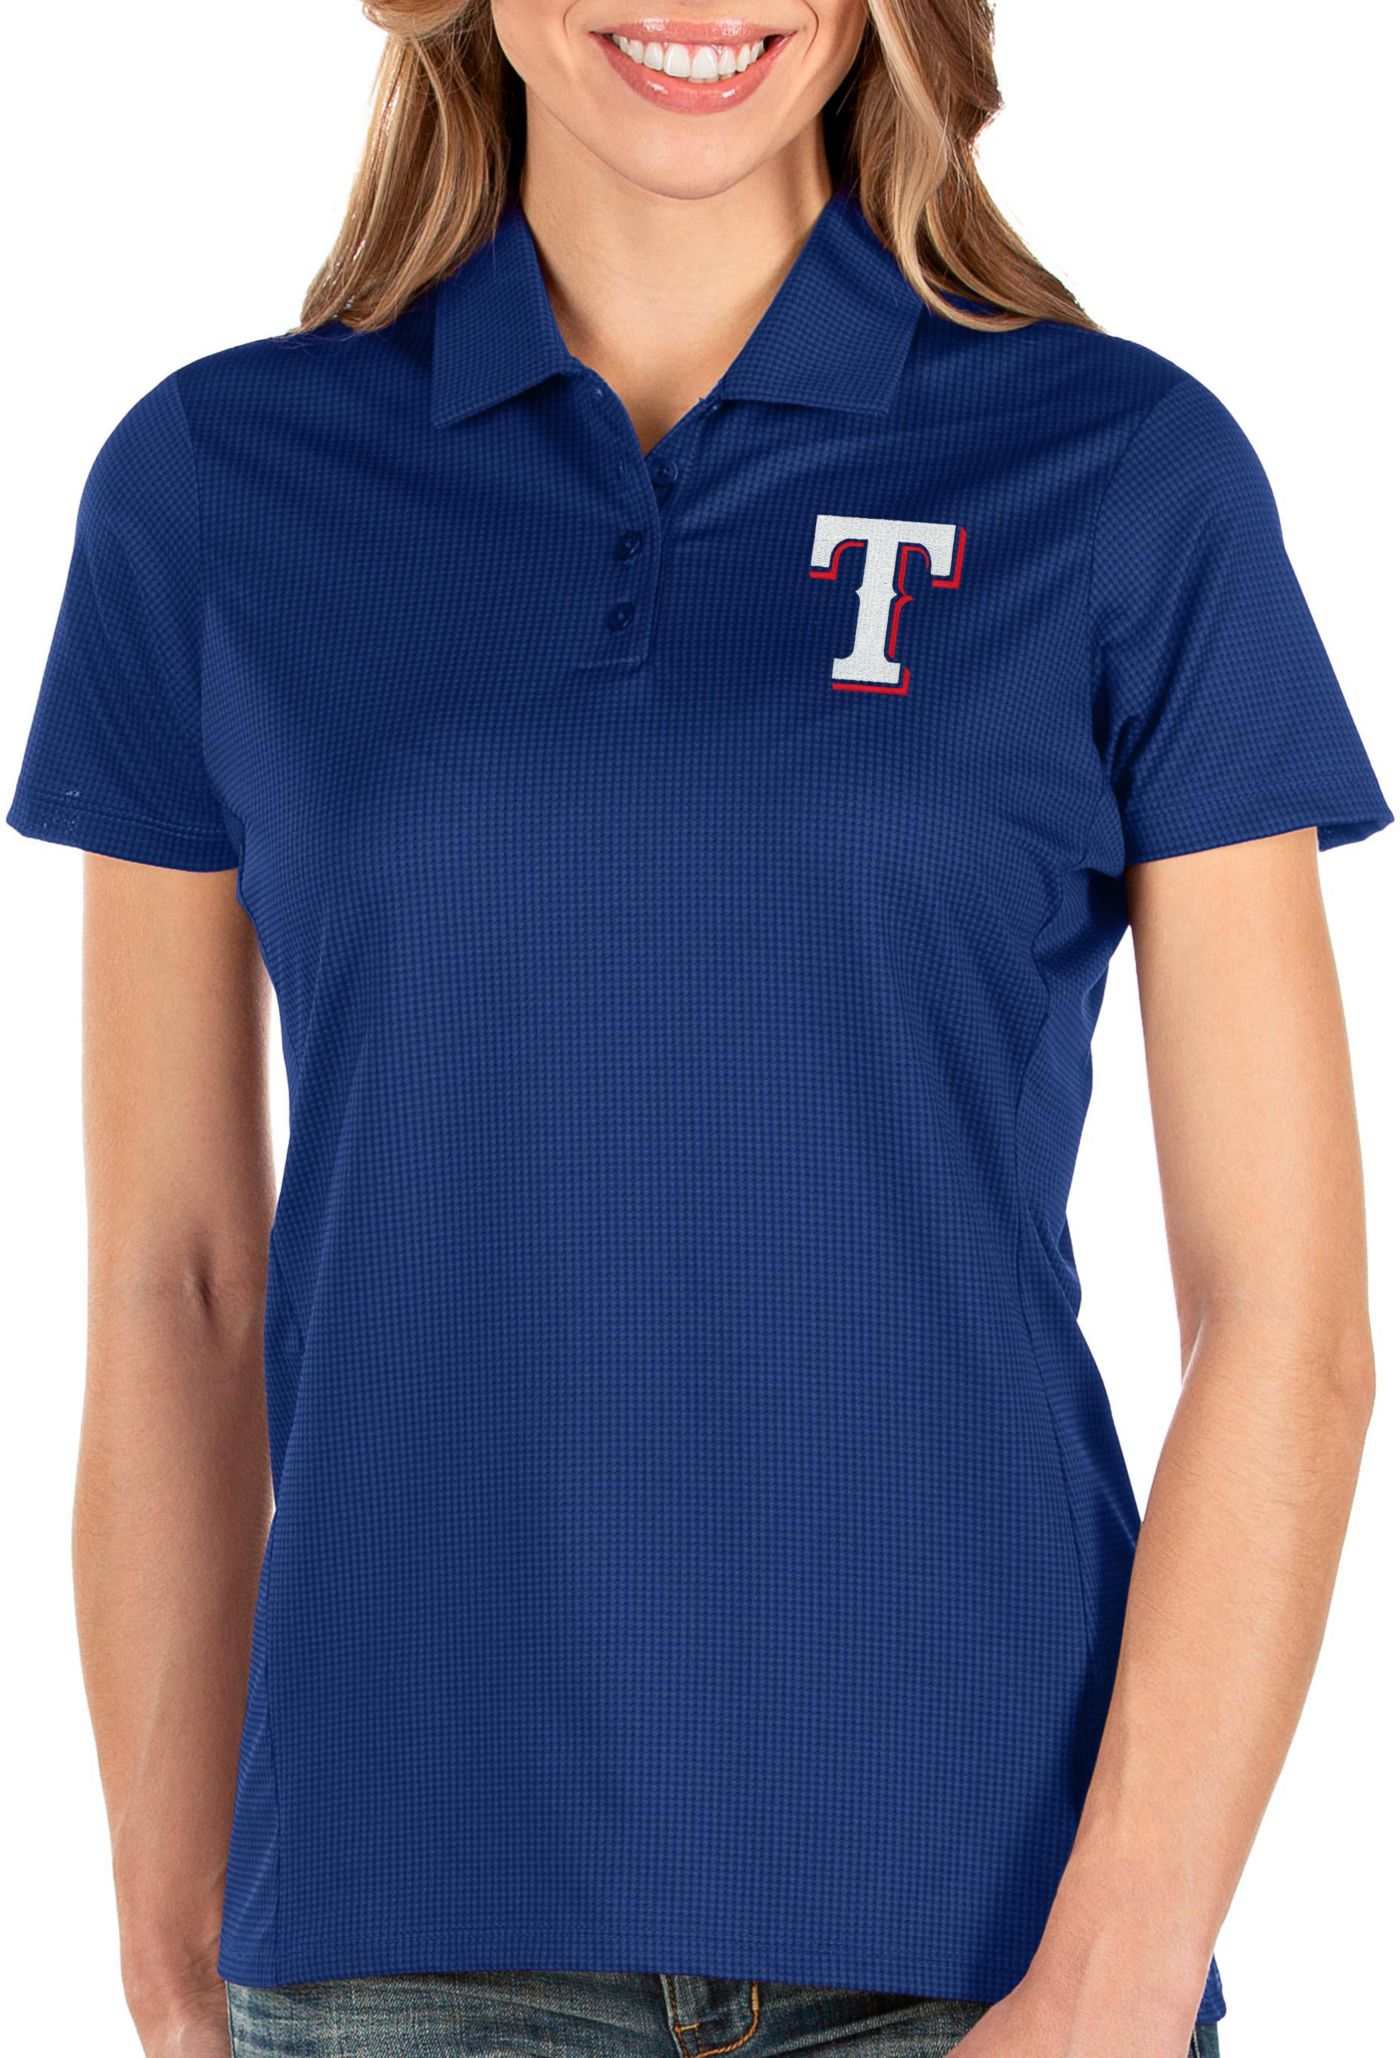 Antigua Women's Texas Rangers Royal Balance Polo